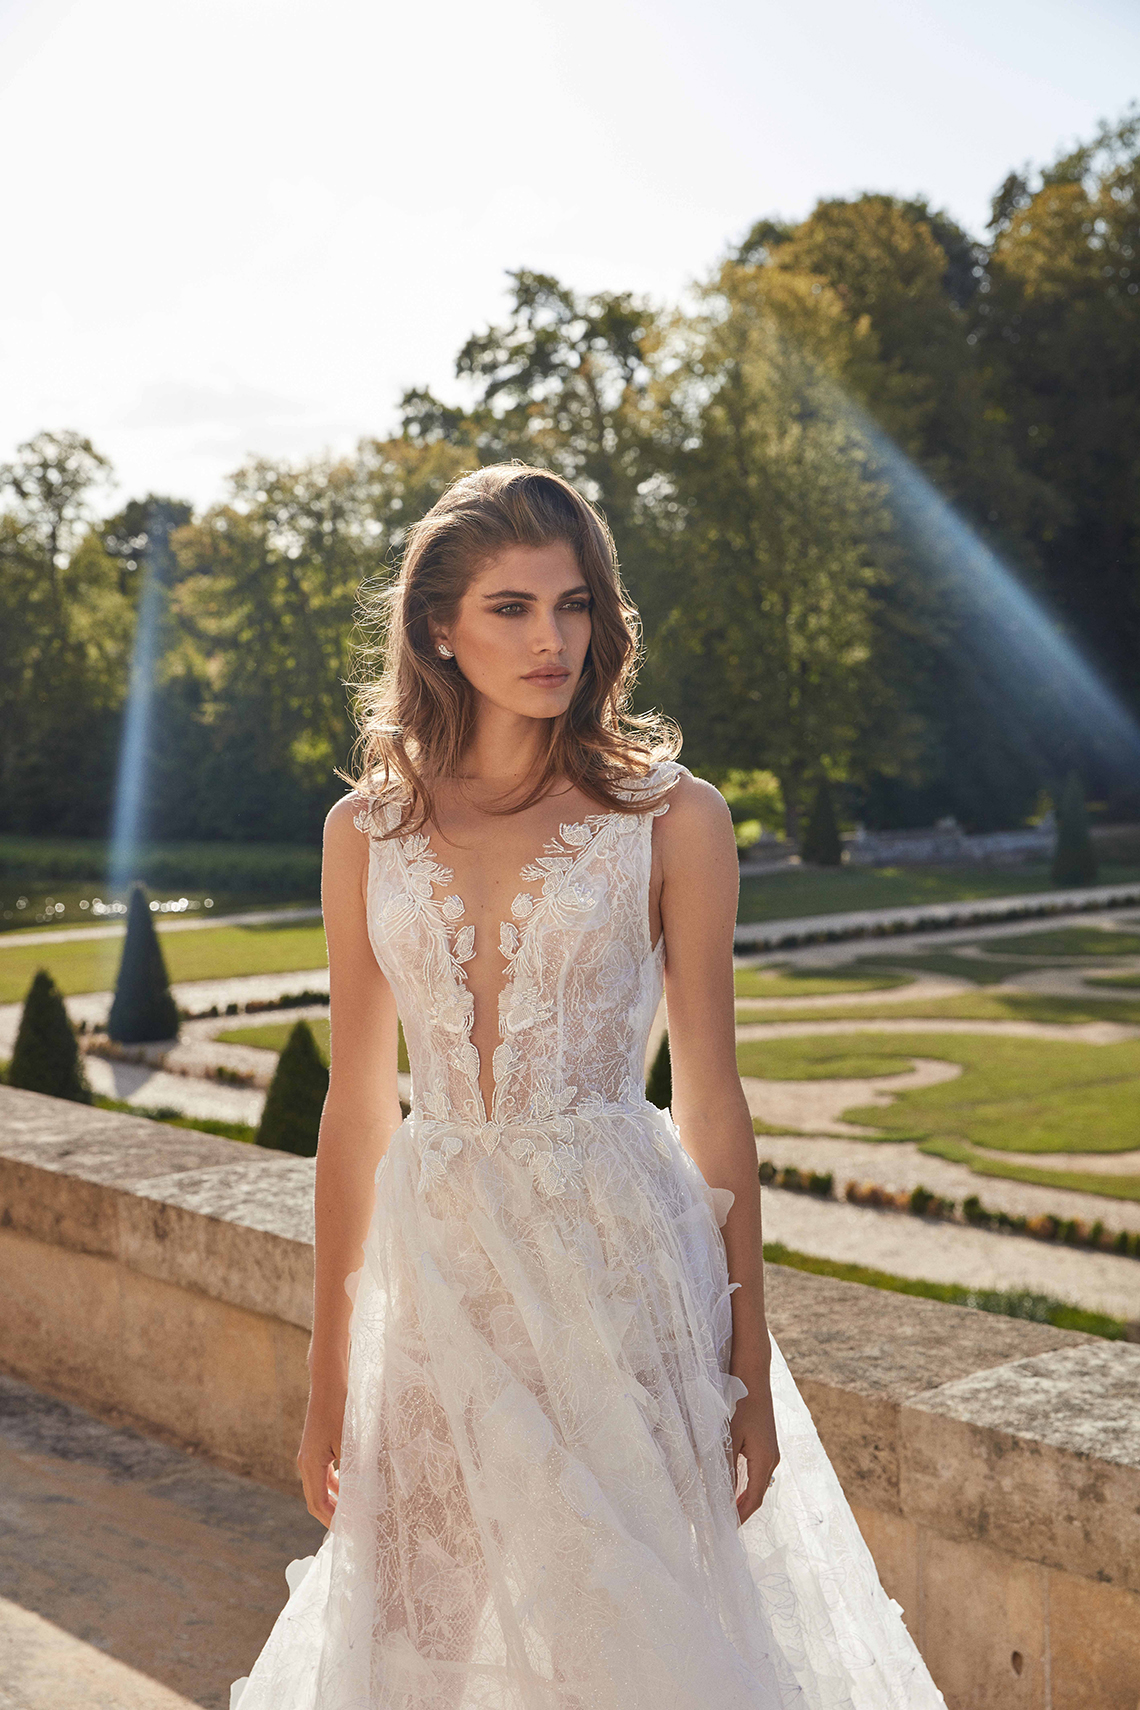 Galia Lahav Fancy White 2020 Wedding Dress Collection – Priyanka 2